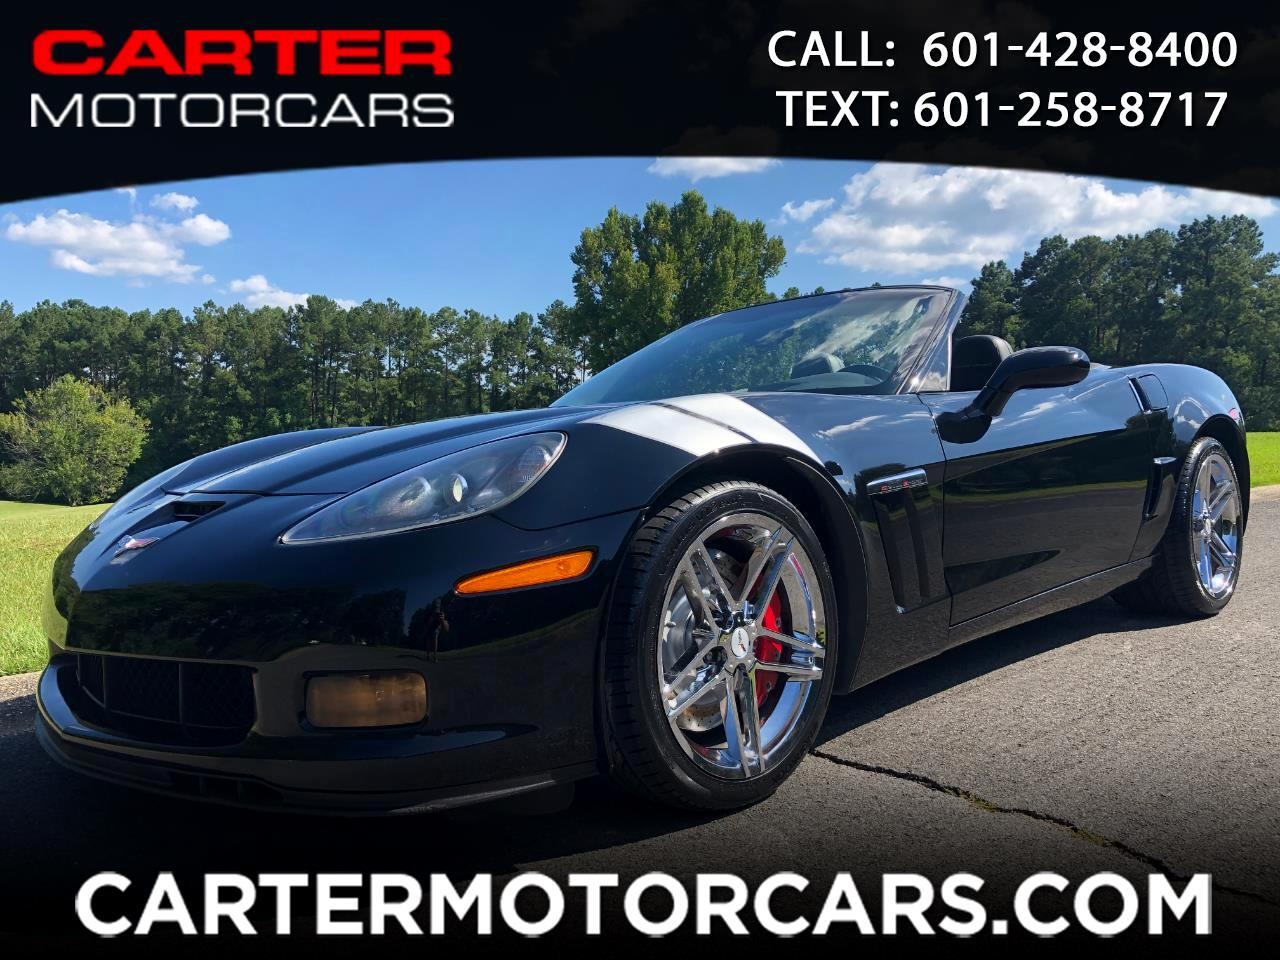 Chevrolet Corvette GS Convertible 3LT 2013